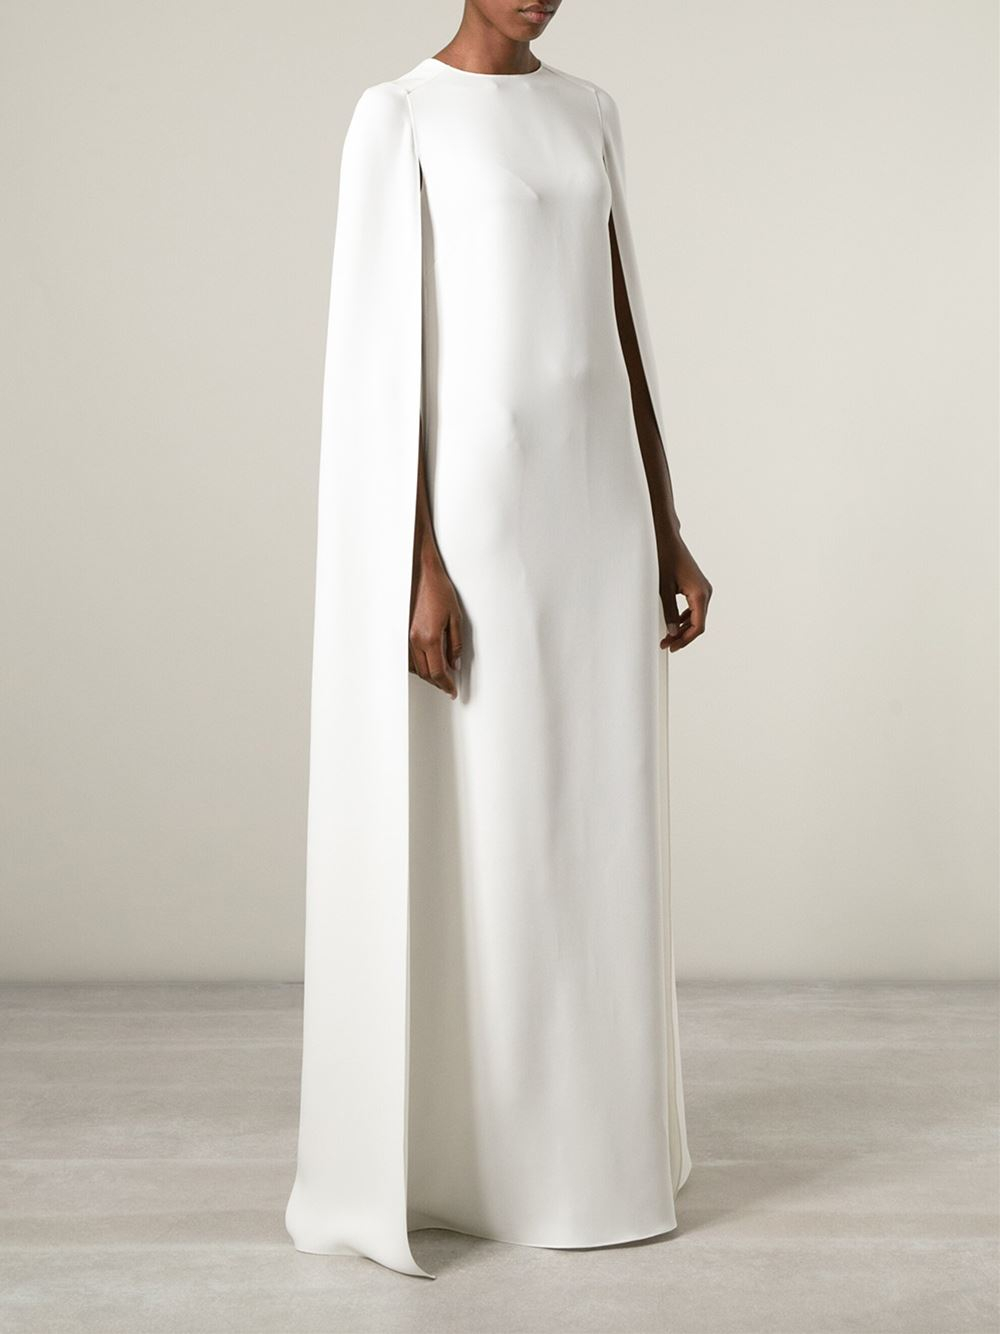 Lyst - Valentino Cape-Style Evening Dress in White